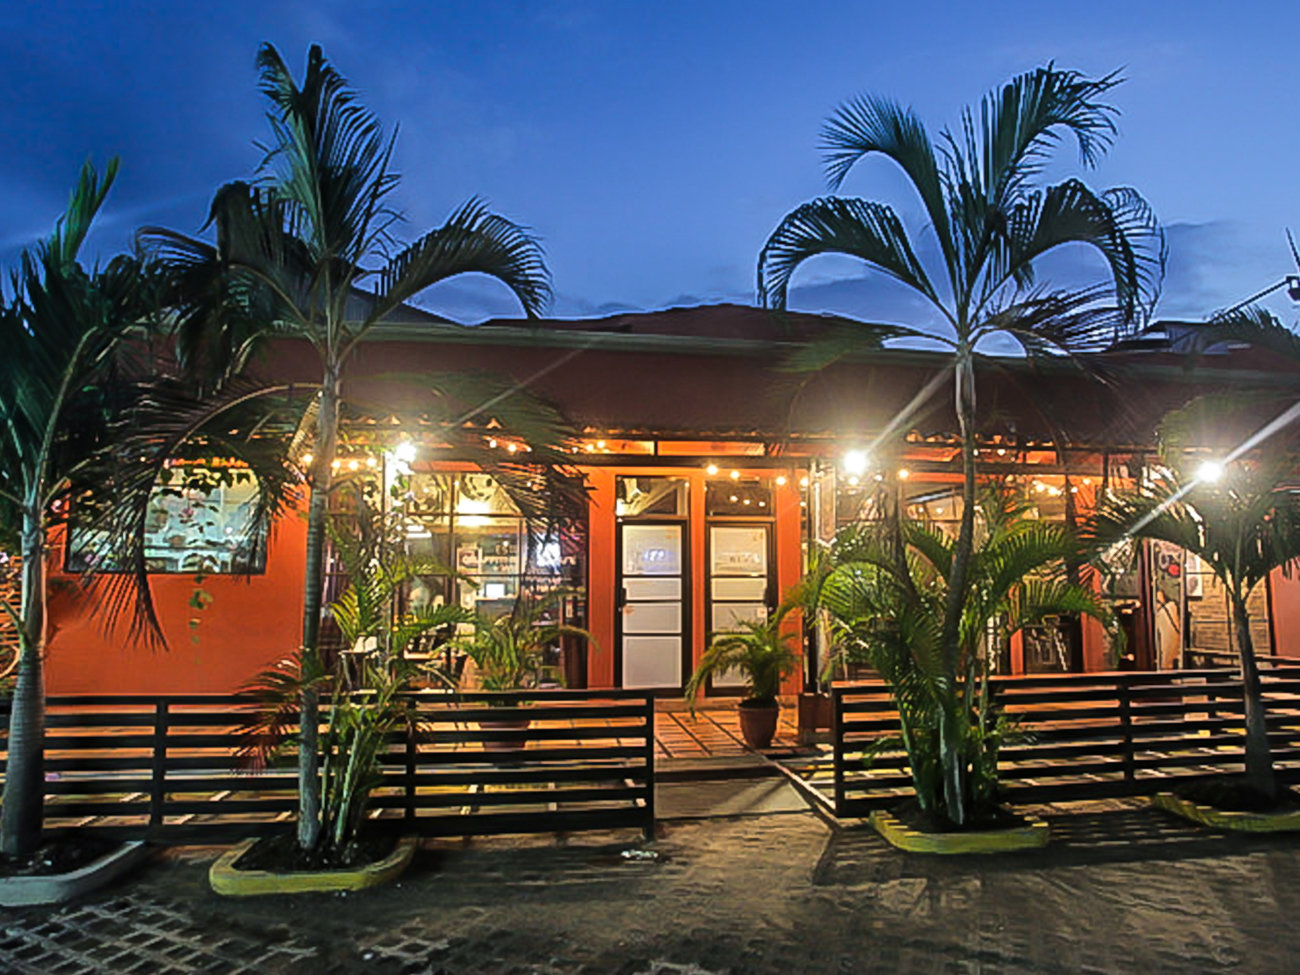 Graffiti Restro Cafe and Wine Bar Restaurant in Costa Rica